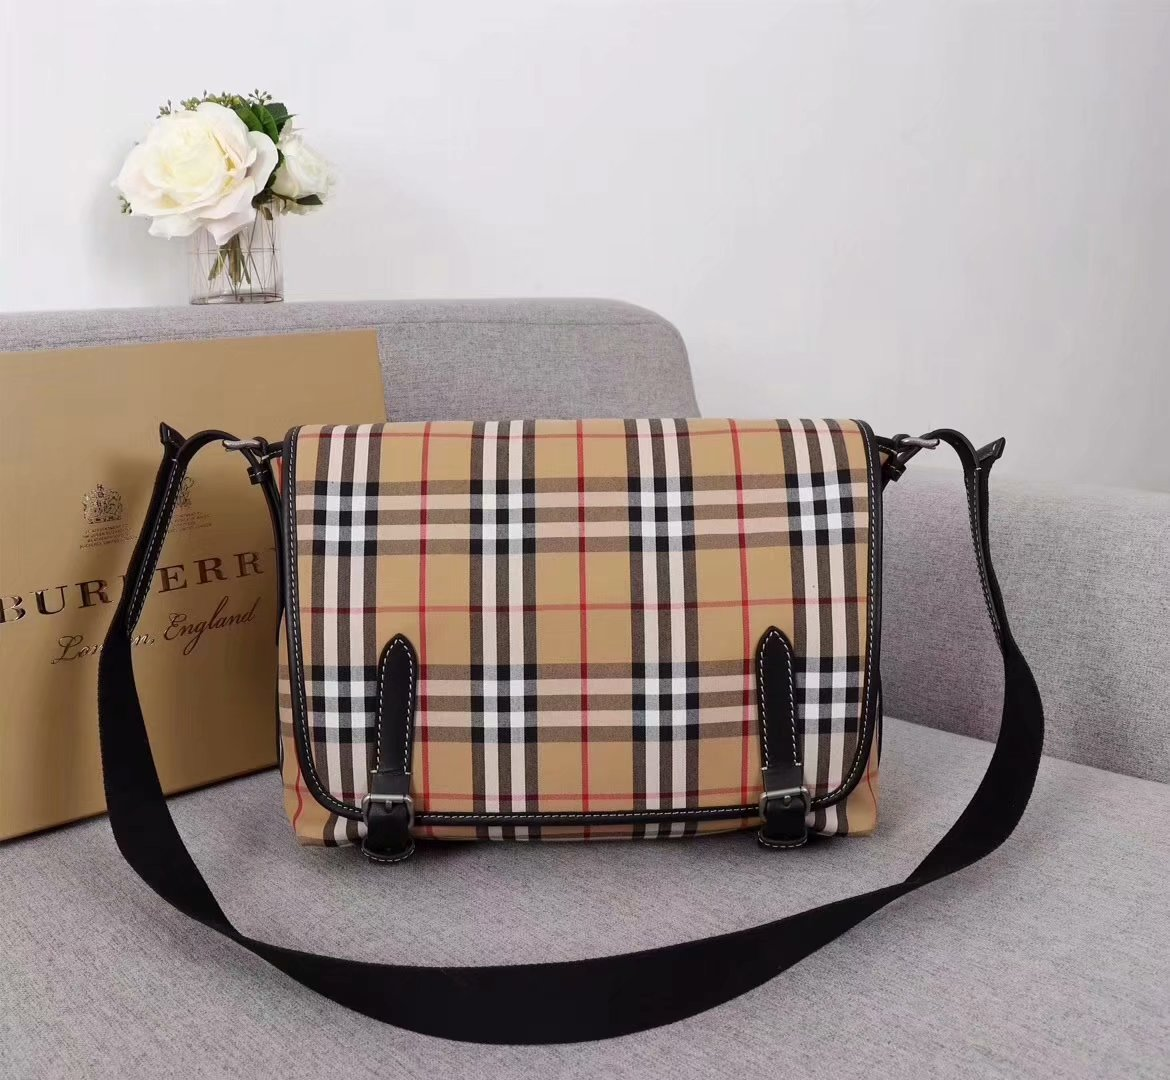 Replica Burberry Vintage Check and Leather Leather Crossbody Bag Men And Women